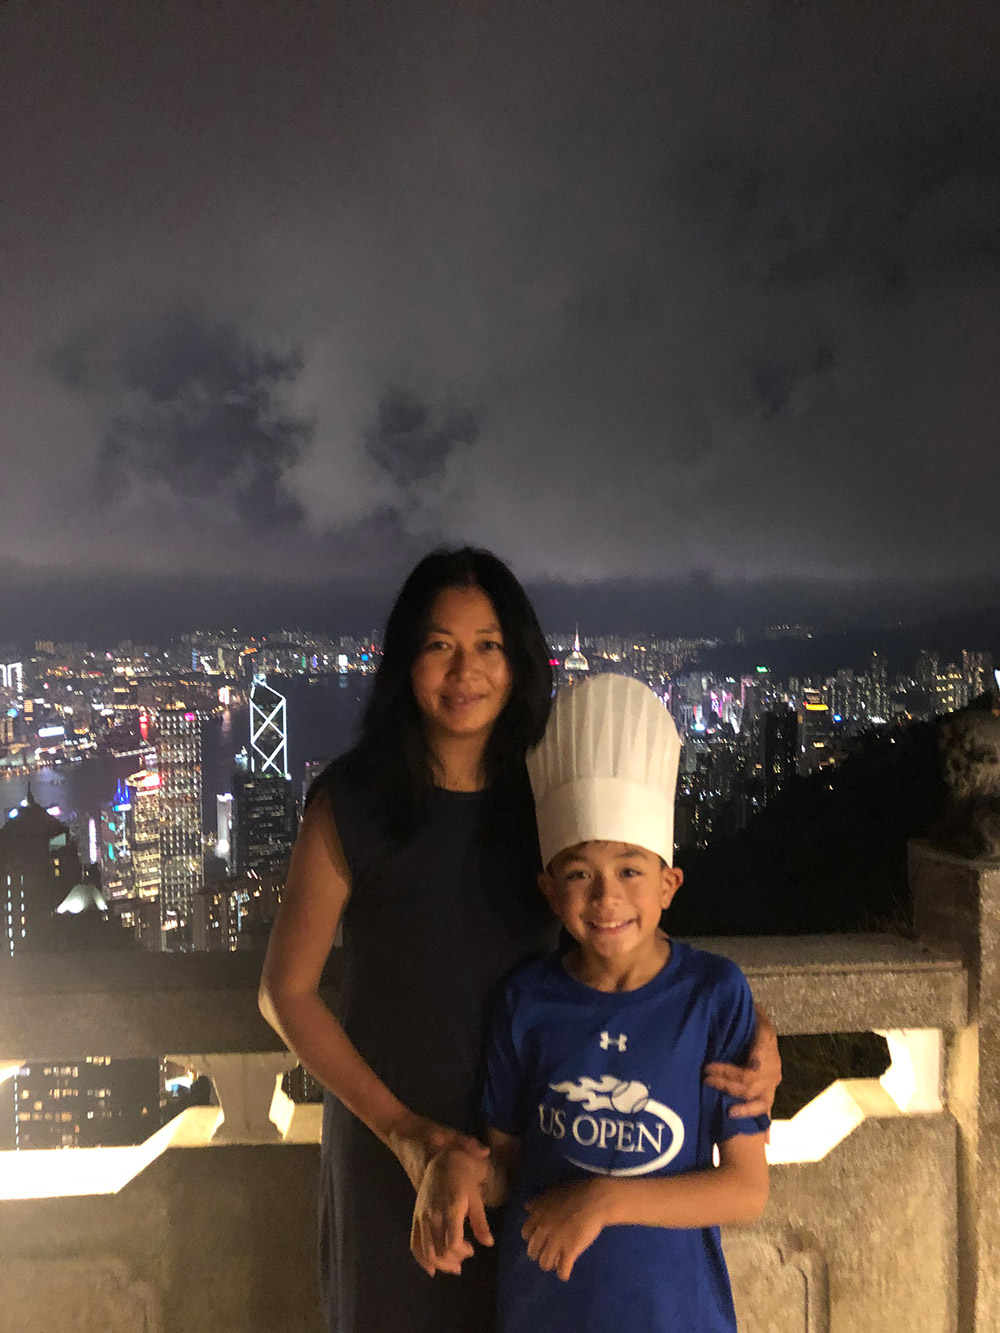 'Chef Oliver' enjoys the spectacular views of Hong Kong from Victoria Peak after an earlier visit to a fabulous dim sum restaurant with his mother, Tiffany. And yes, the food was amazing. August, 2019